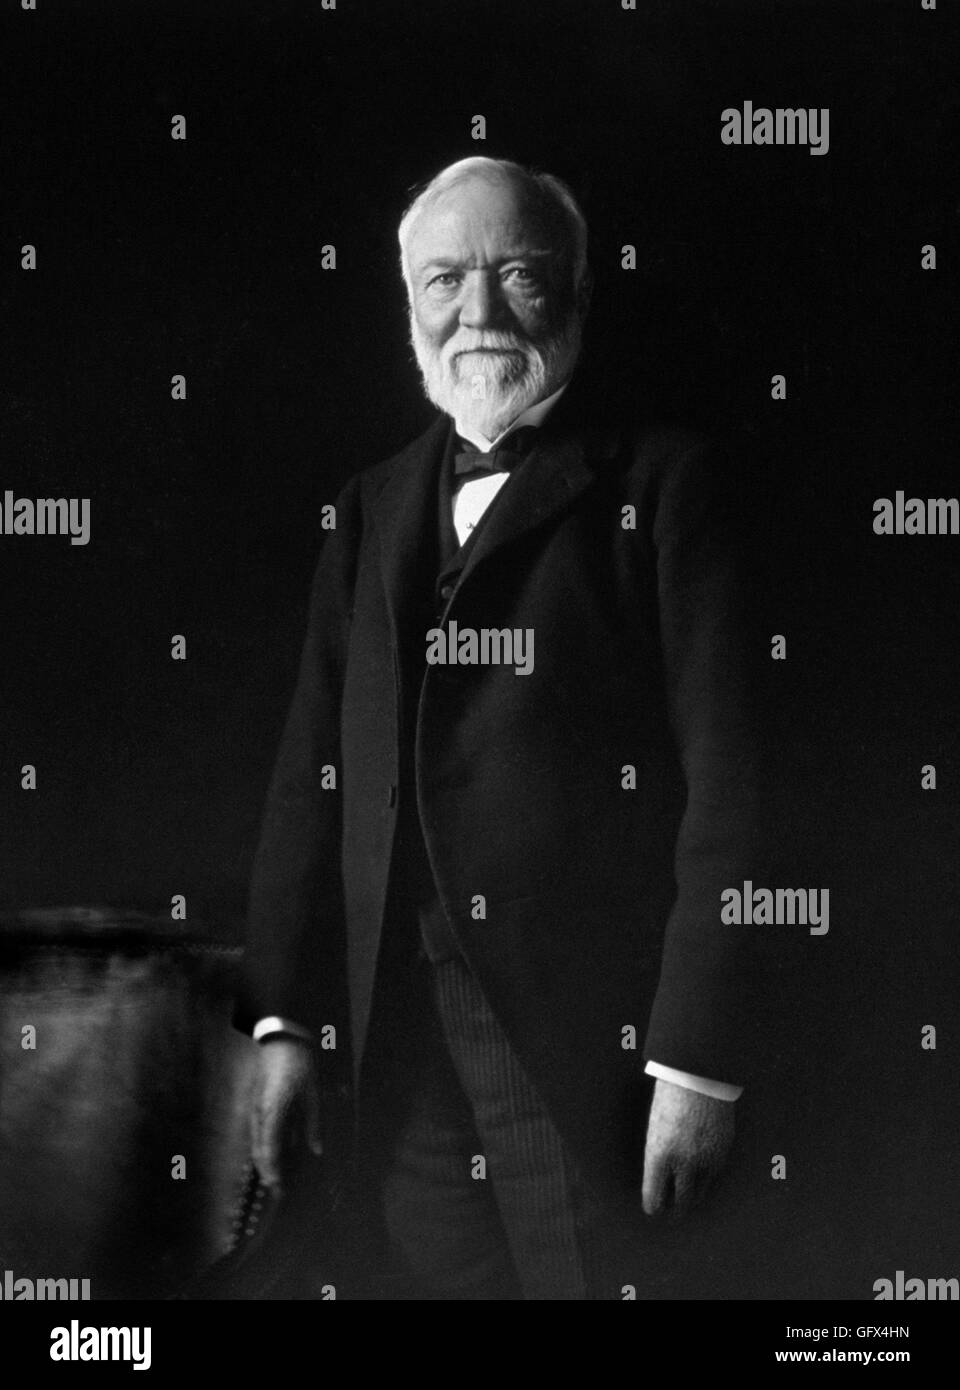 Andrew Carnegie (1835-1919). Portrait of the Scottish-American industrialist by Theodore Marceau, c.1913. - Stock Image